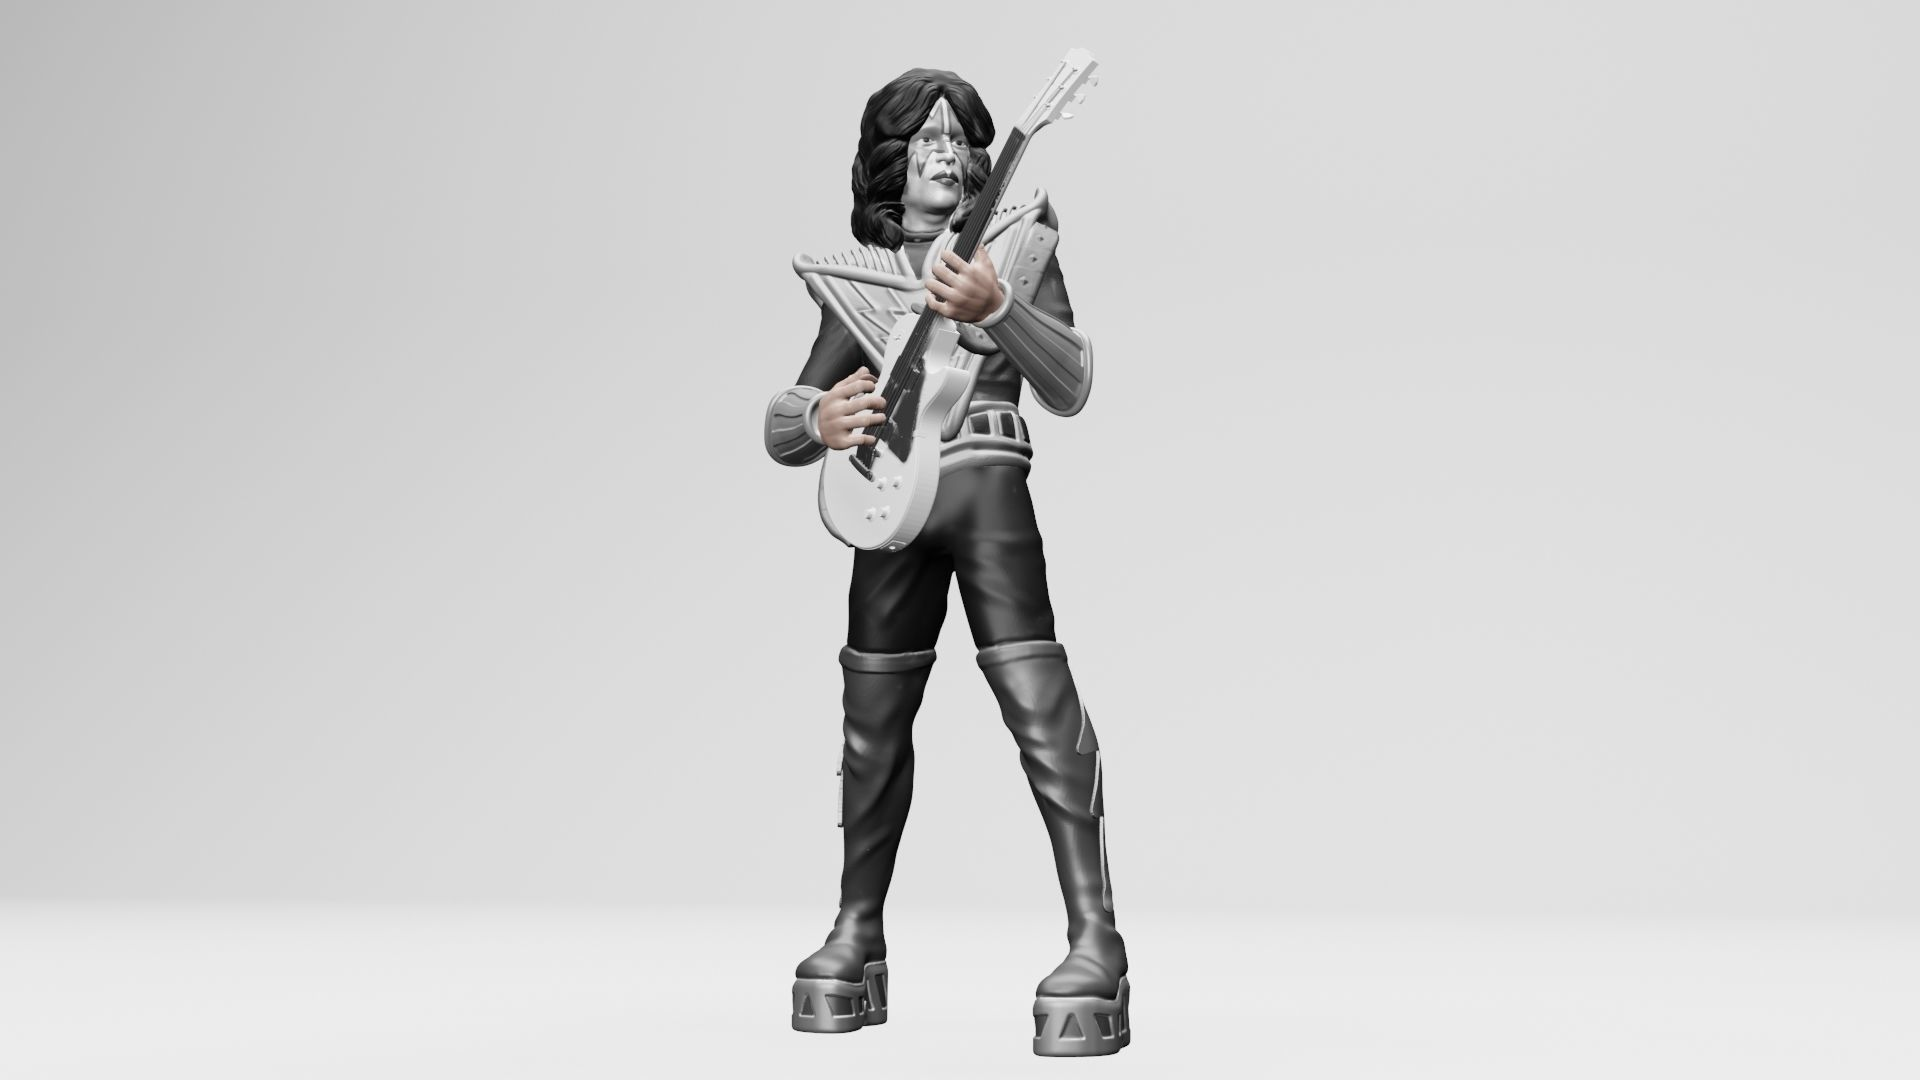 Tommy Thayer Kiss - 3Dprinting